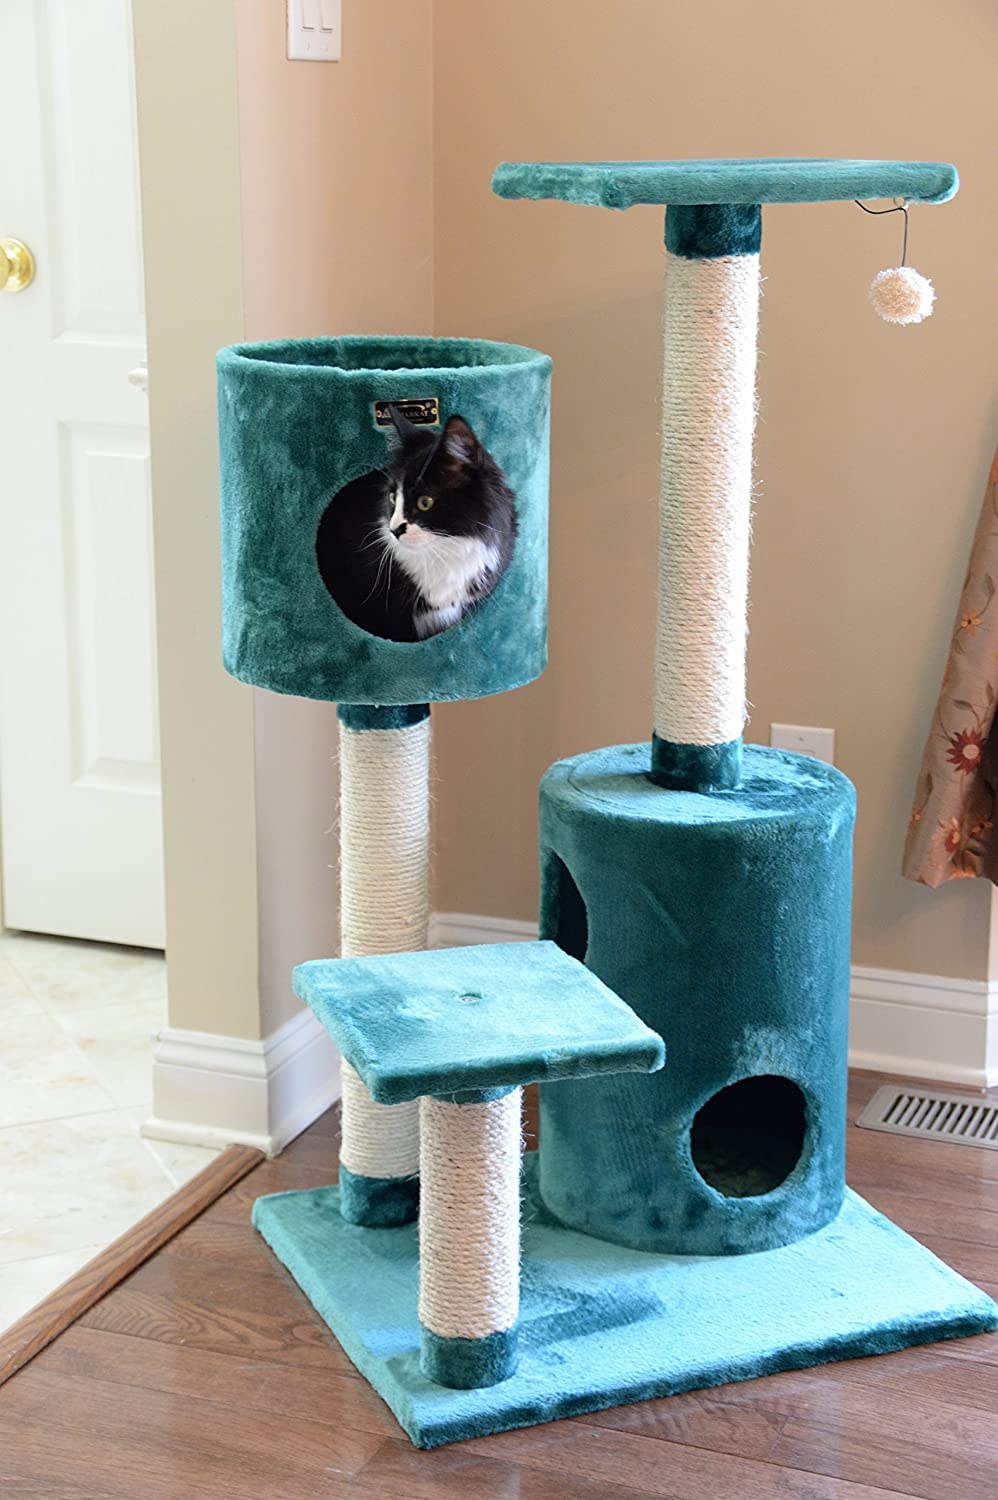 Amazon.com : Armarkat Cat Tree Model A4301, Dark Green : Cat Condo Armarkat  : Pet Supplies